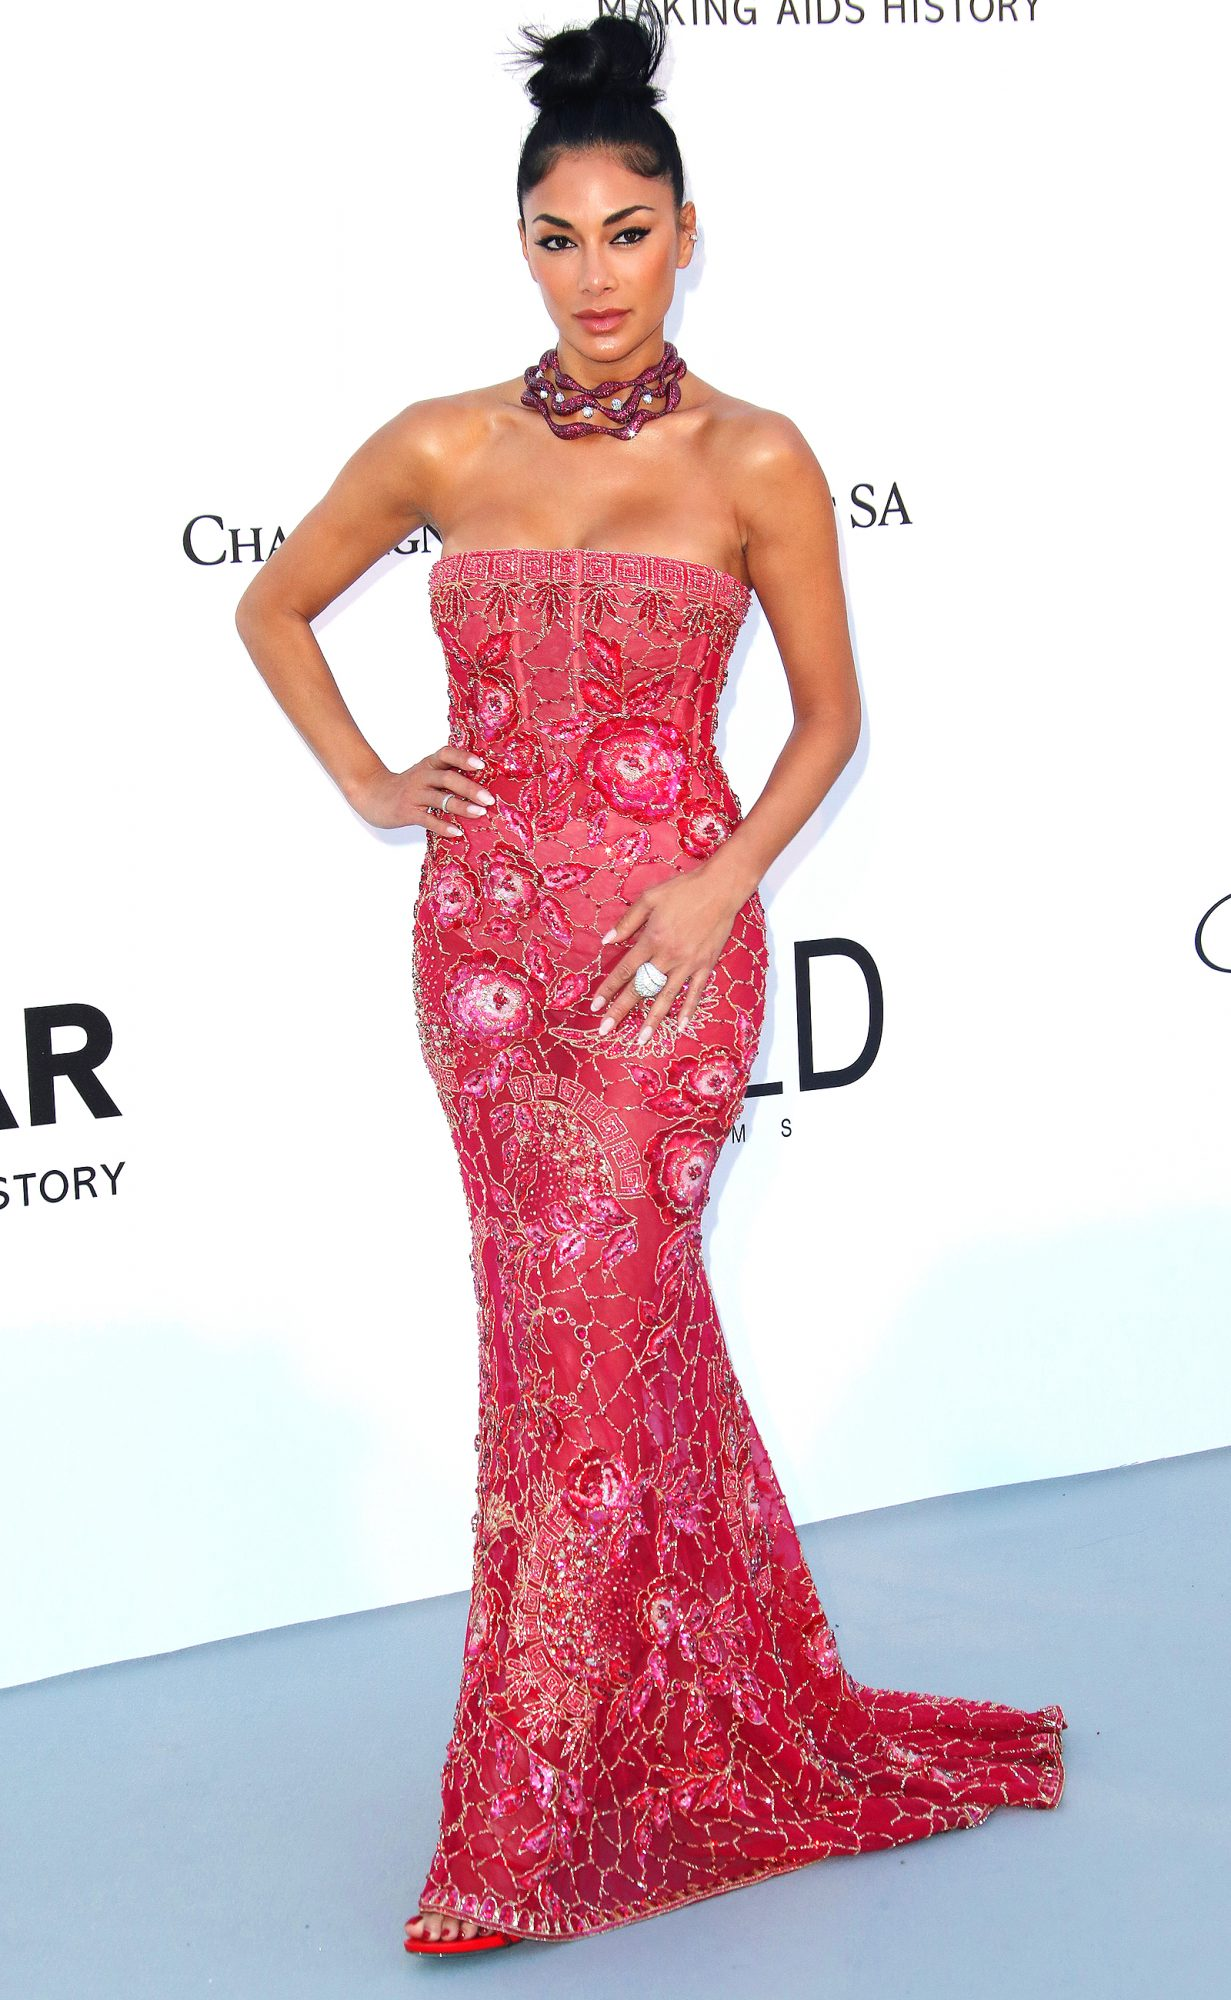 NICOLE SCHERZINGER The singer raspberry red tulle gown embroidered with sequins, crystals and beads designed by Georges Hobeika Couture with a matching colored choker necklace to amfAR's 25th Cinema Against AIDS Gala.